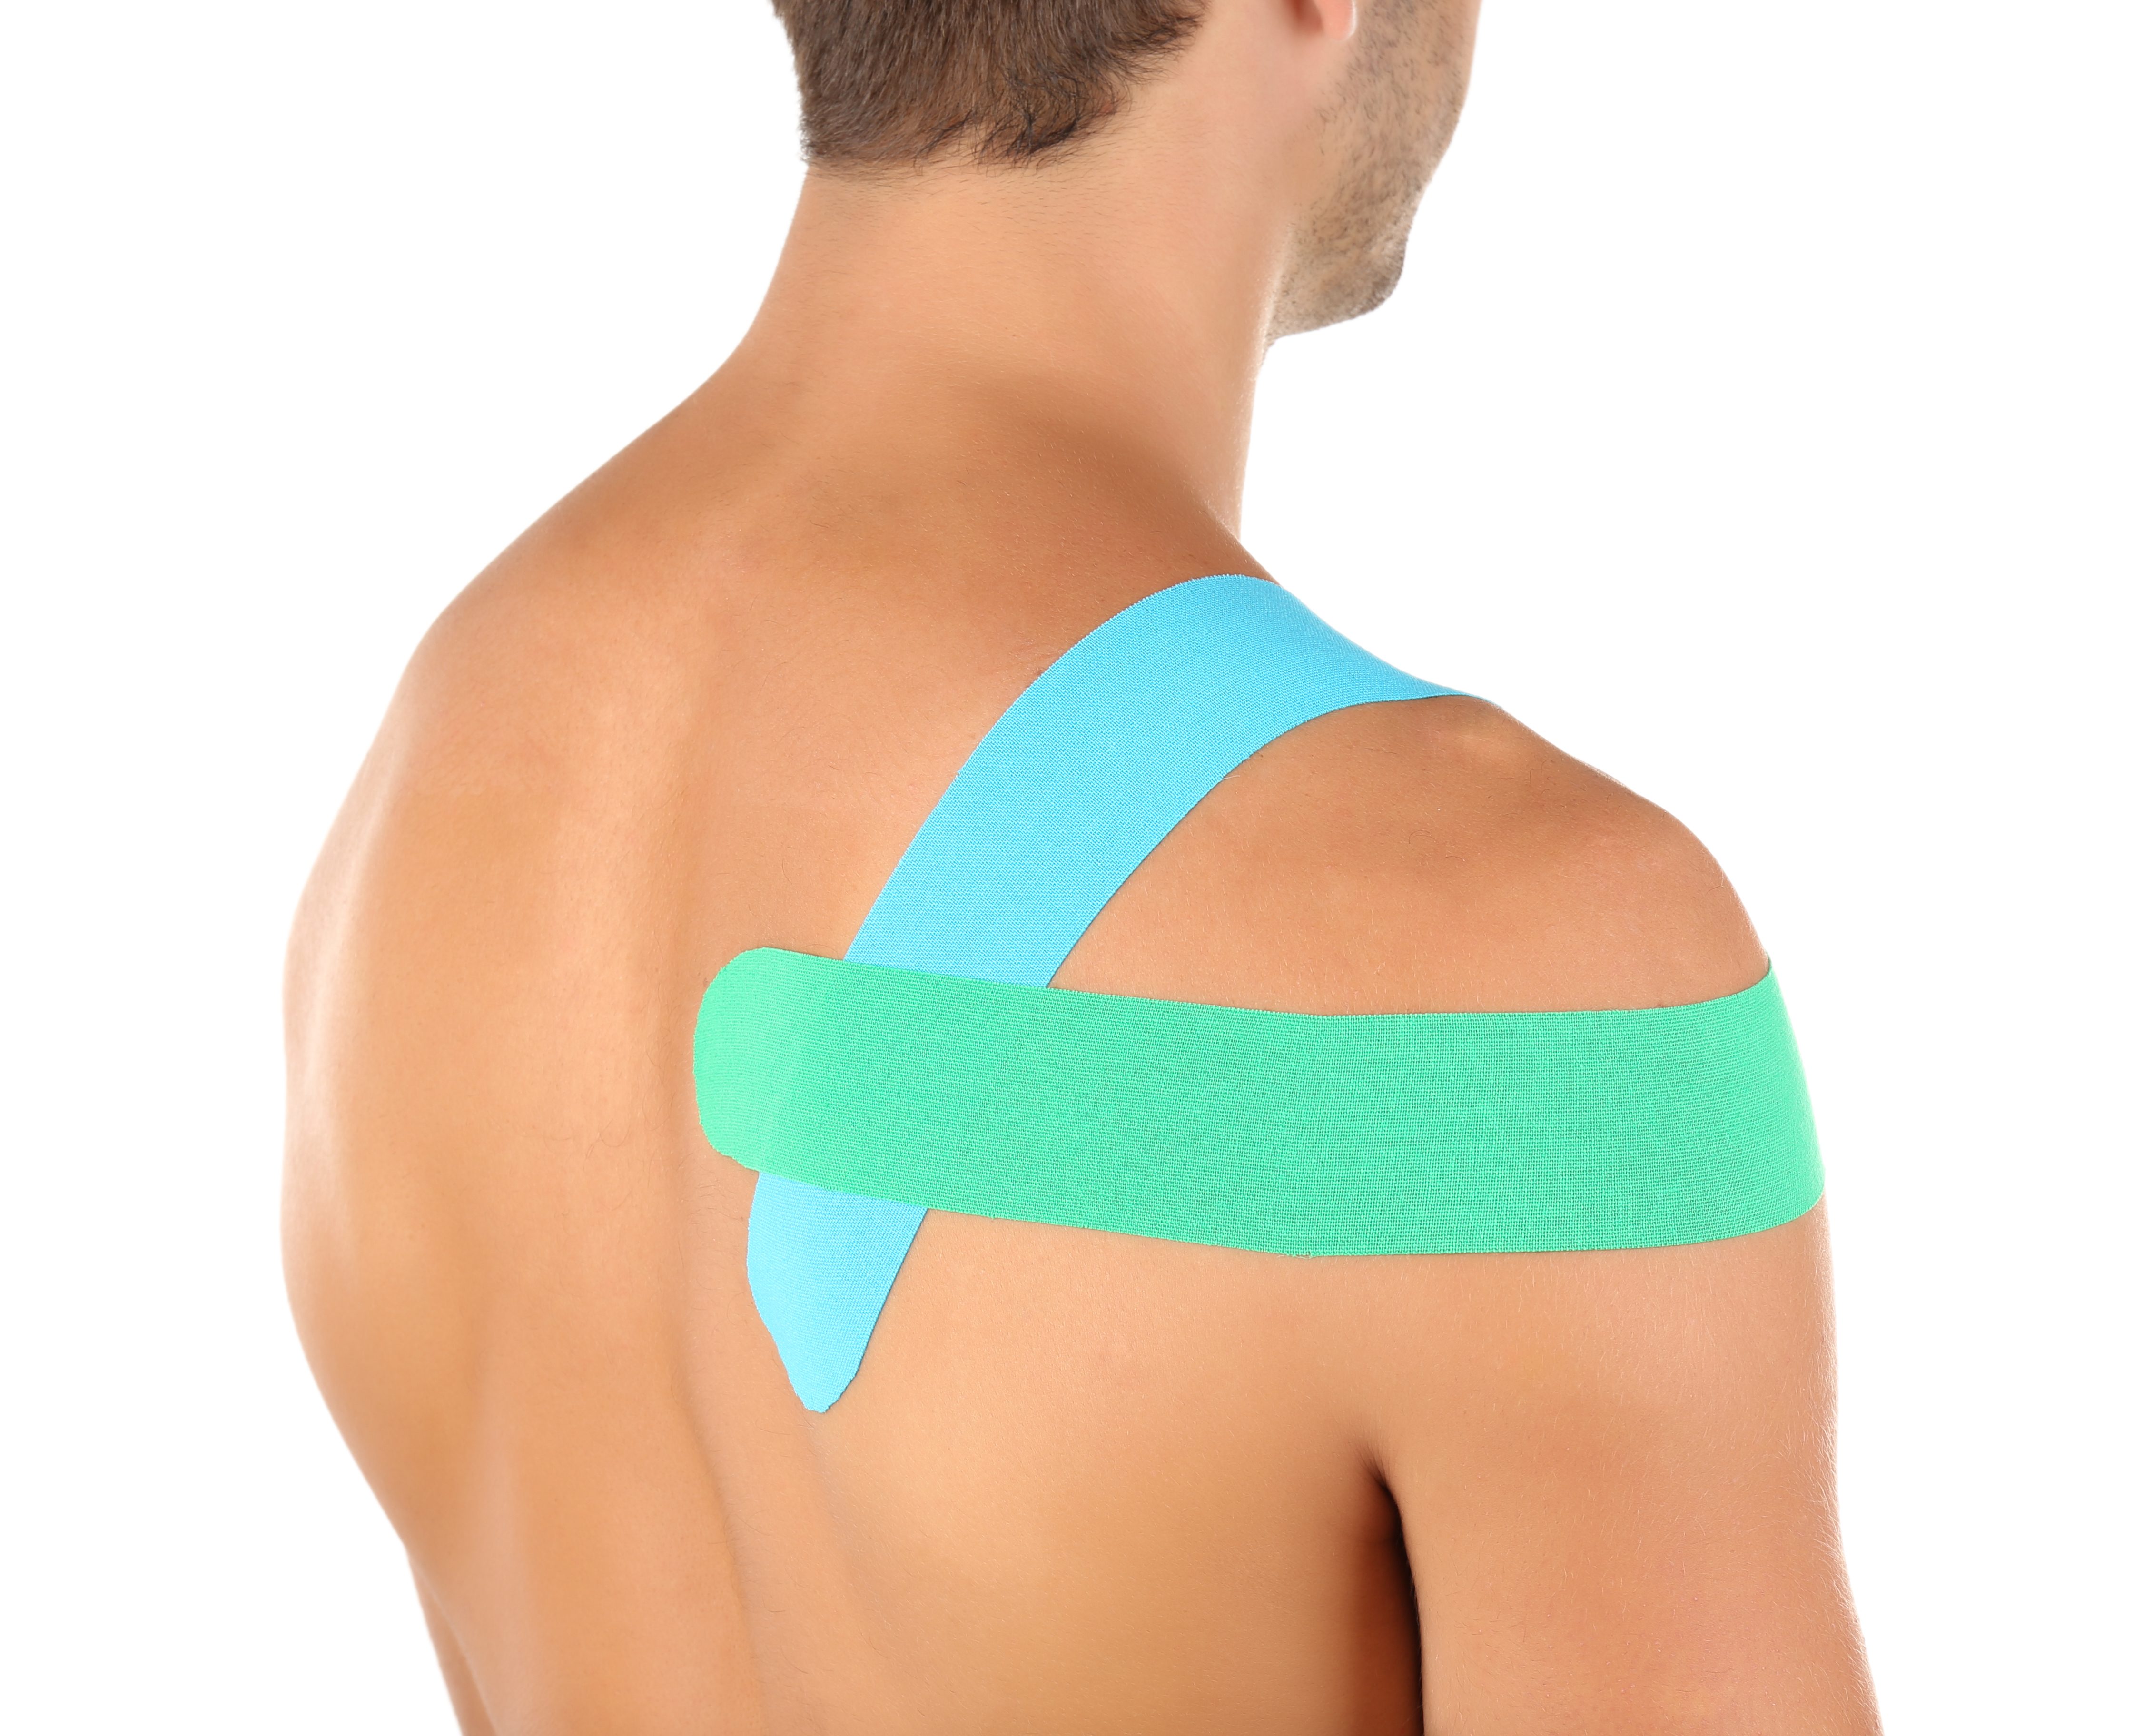 Physio tape on shoulder of sporty man is